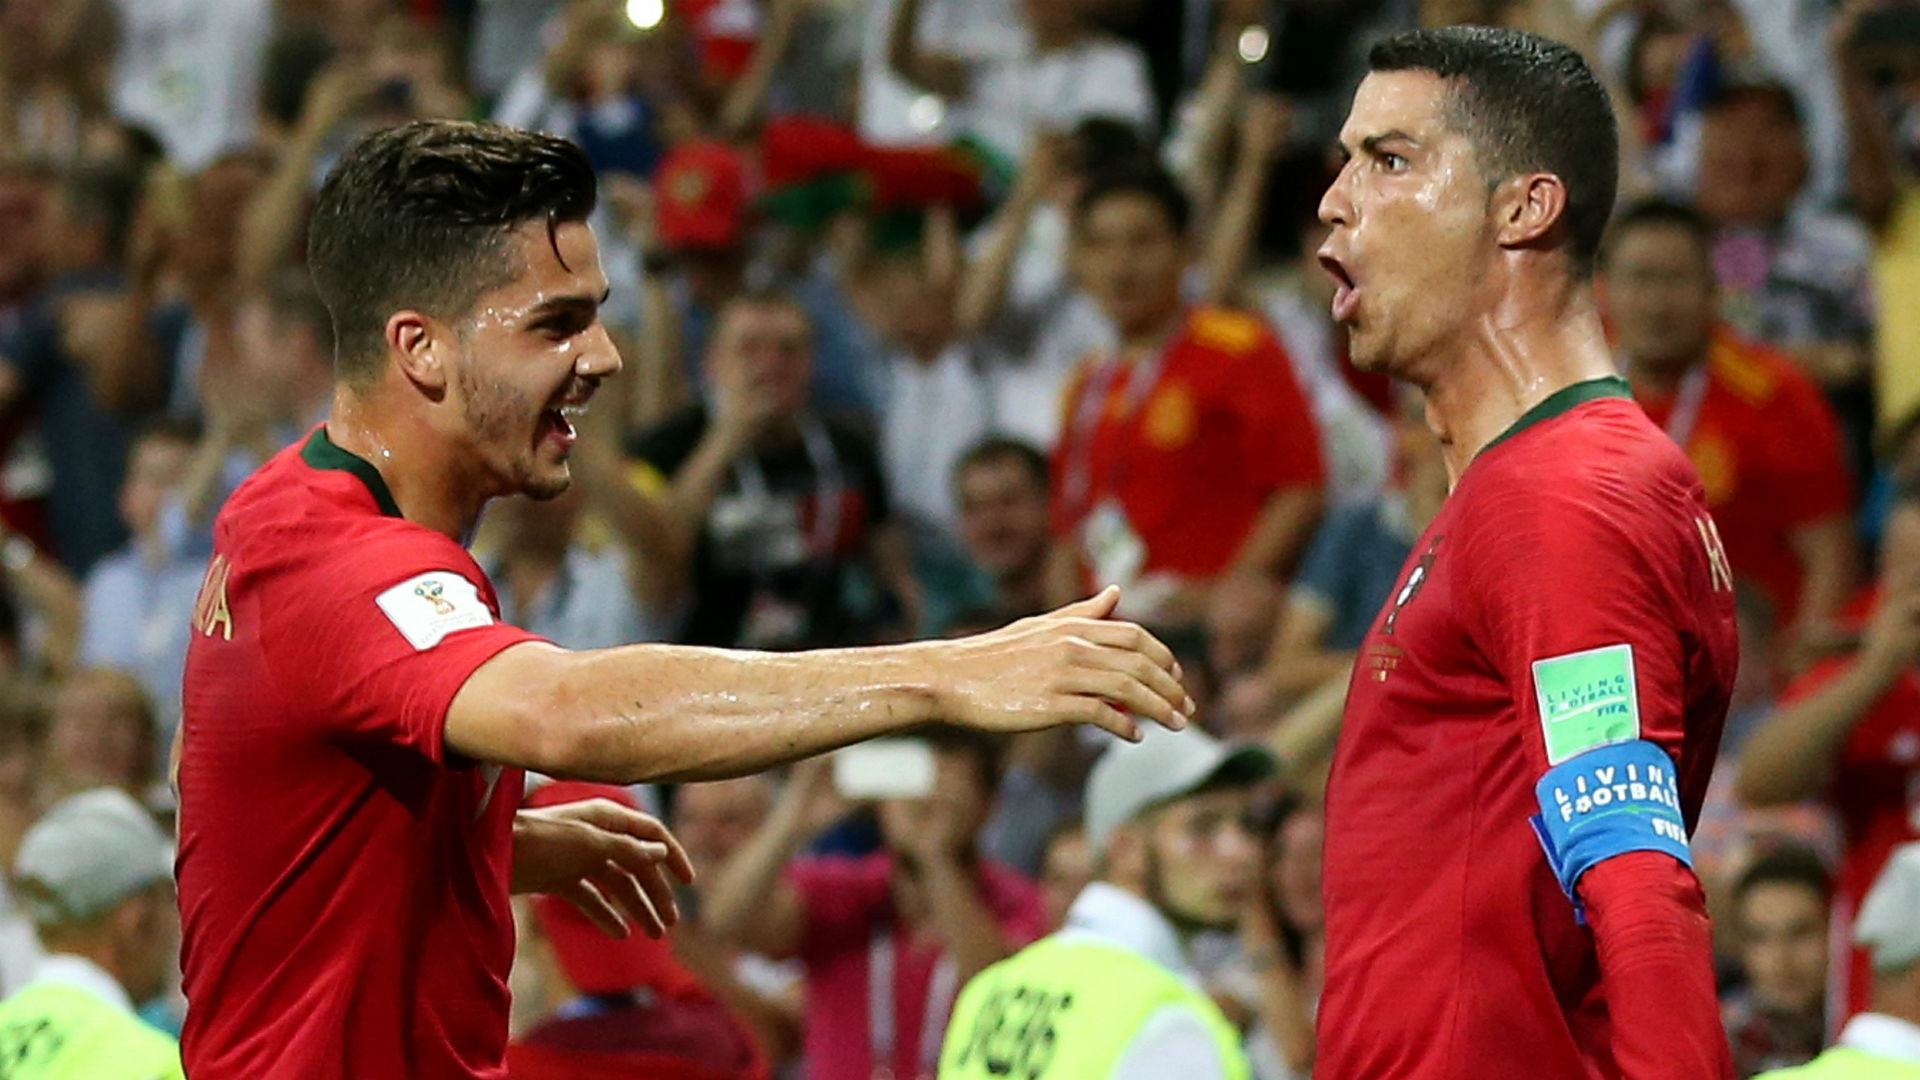 Portugal v Morocco: Hat-trick hero Ronaldo hunts stricken Atlas Lions